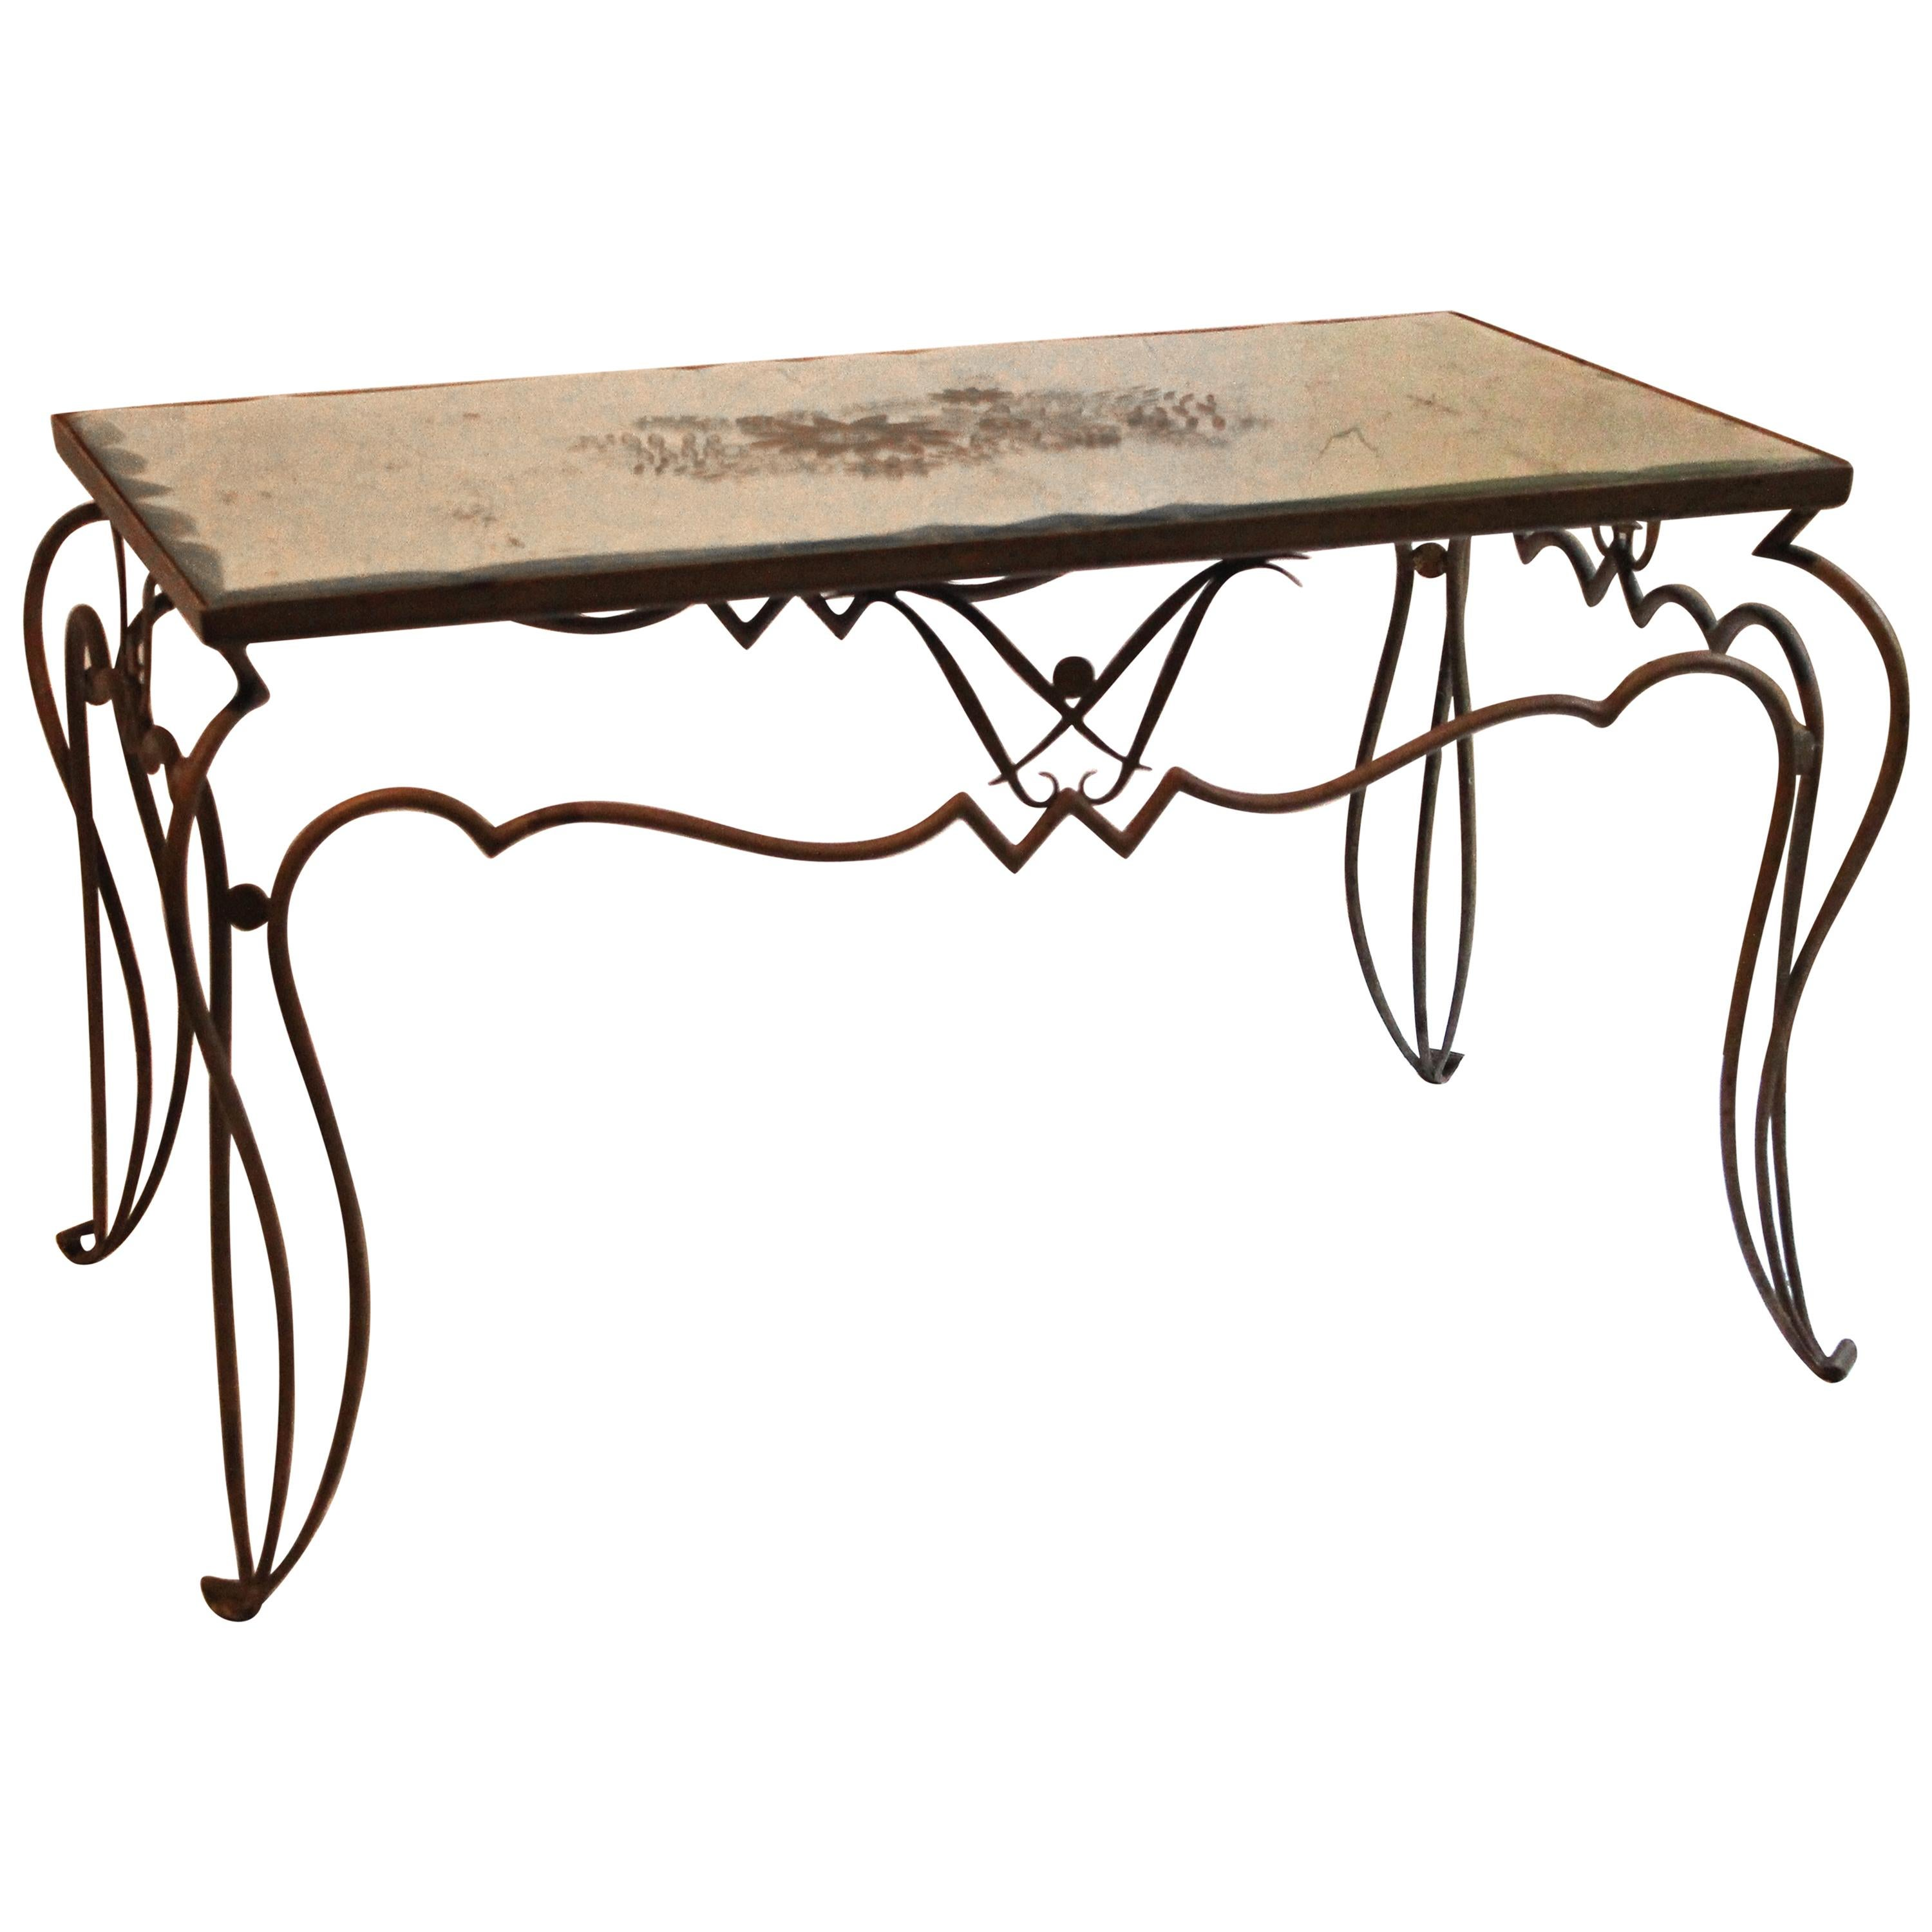 René Drouet French 1940s Coffee Table Wrought Iron and Églomisé Mirrored Top